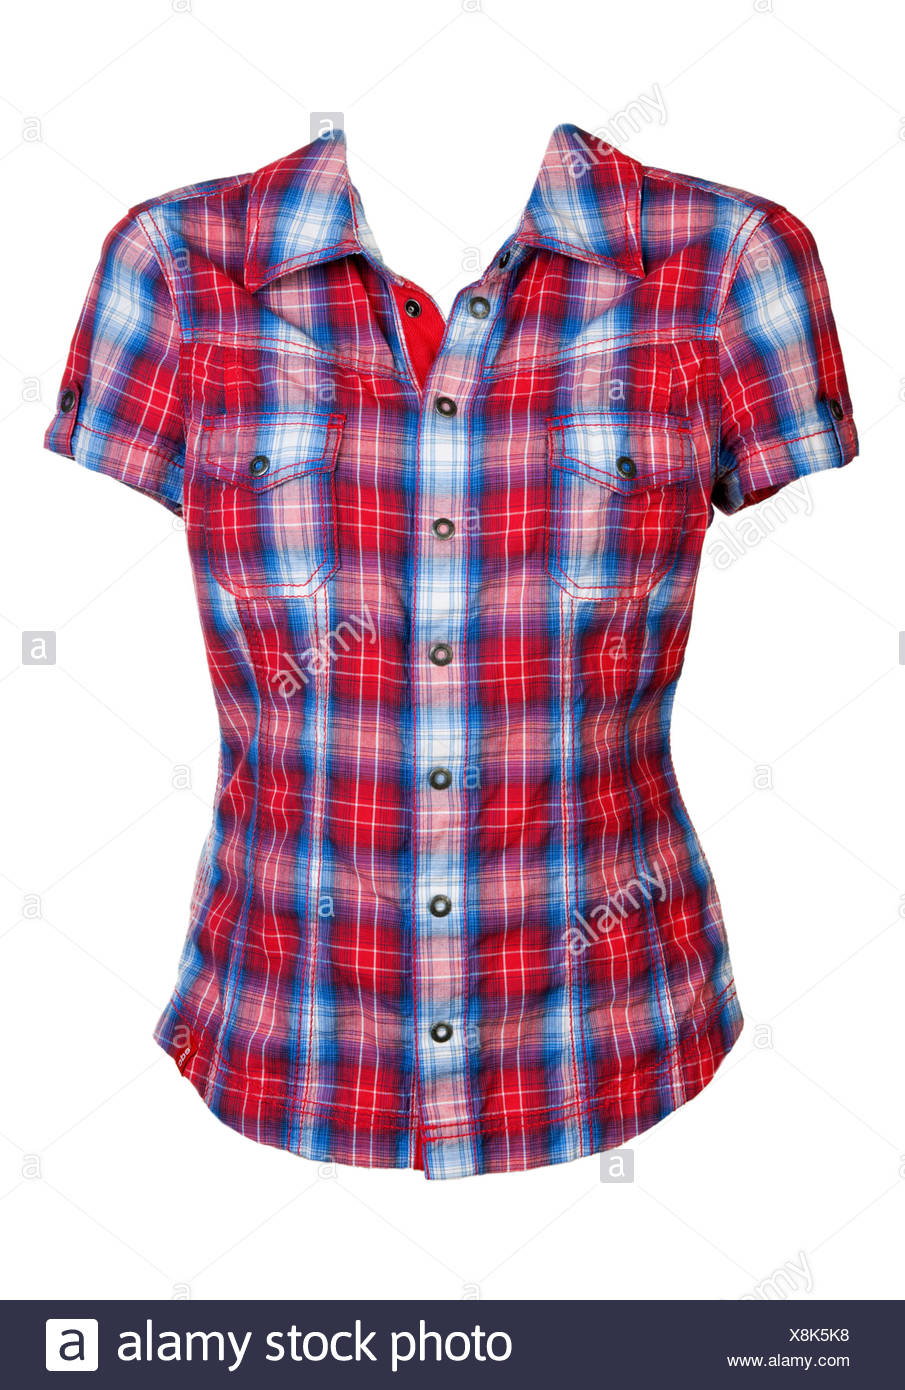 red and white checkered shirt stock photos amp red and white